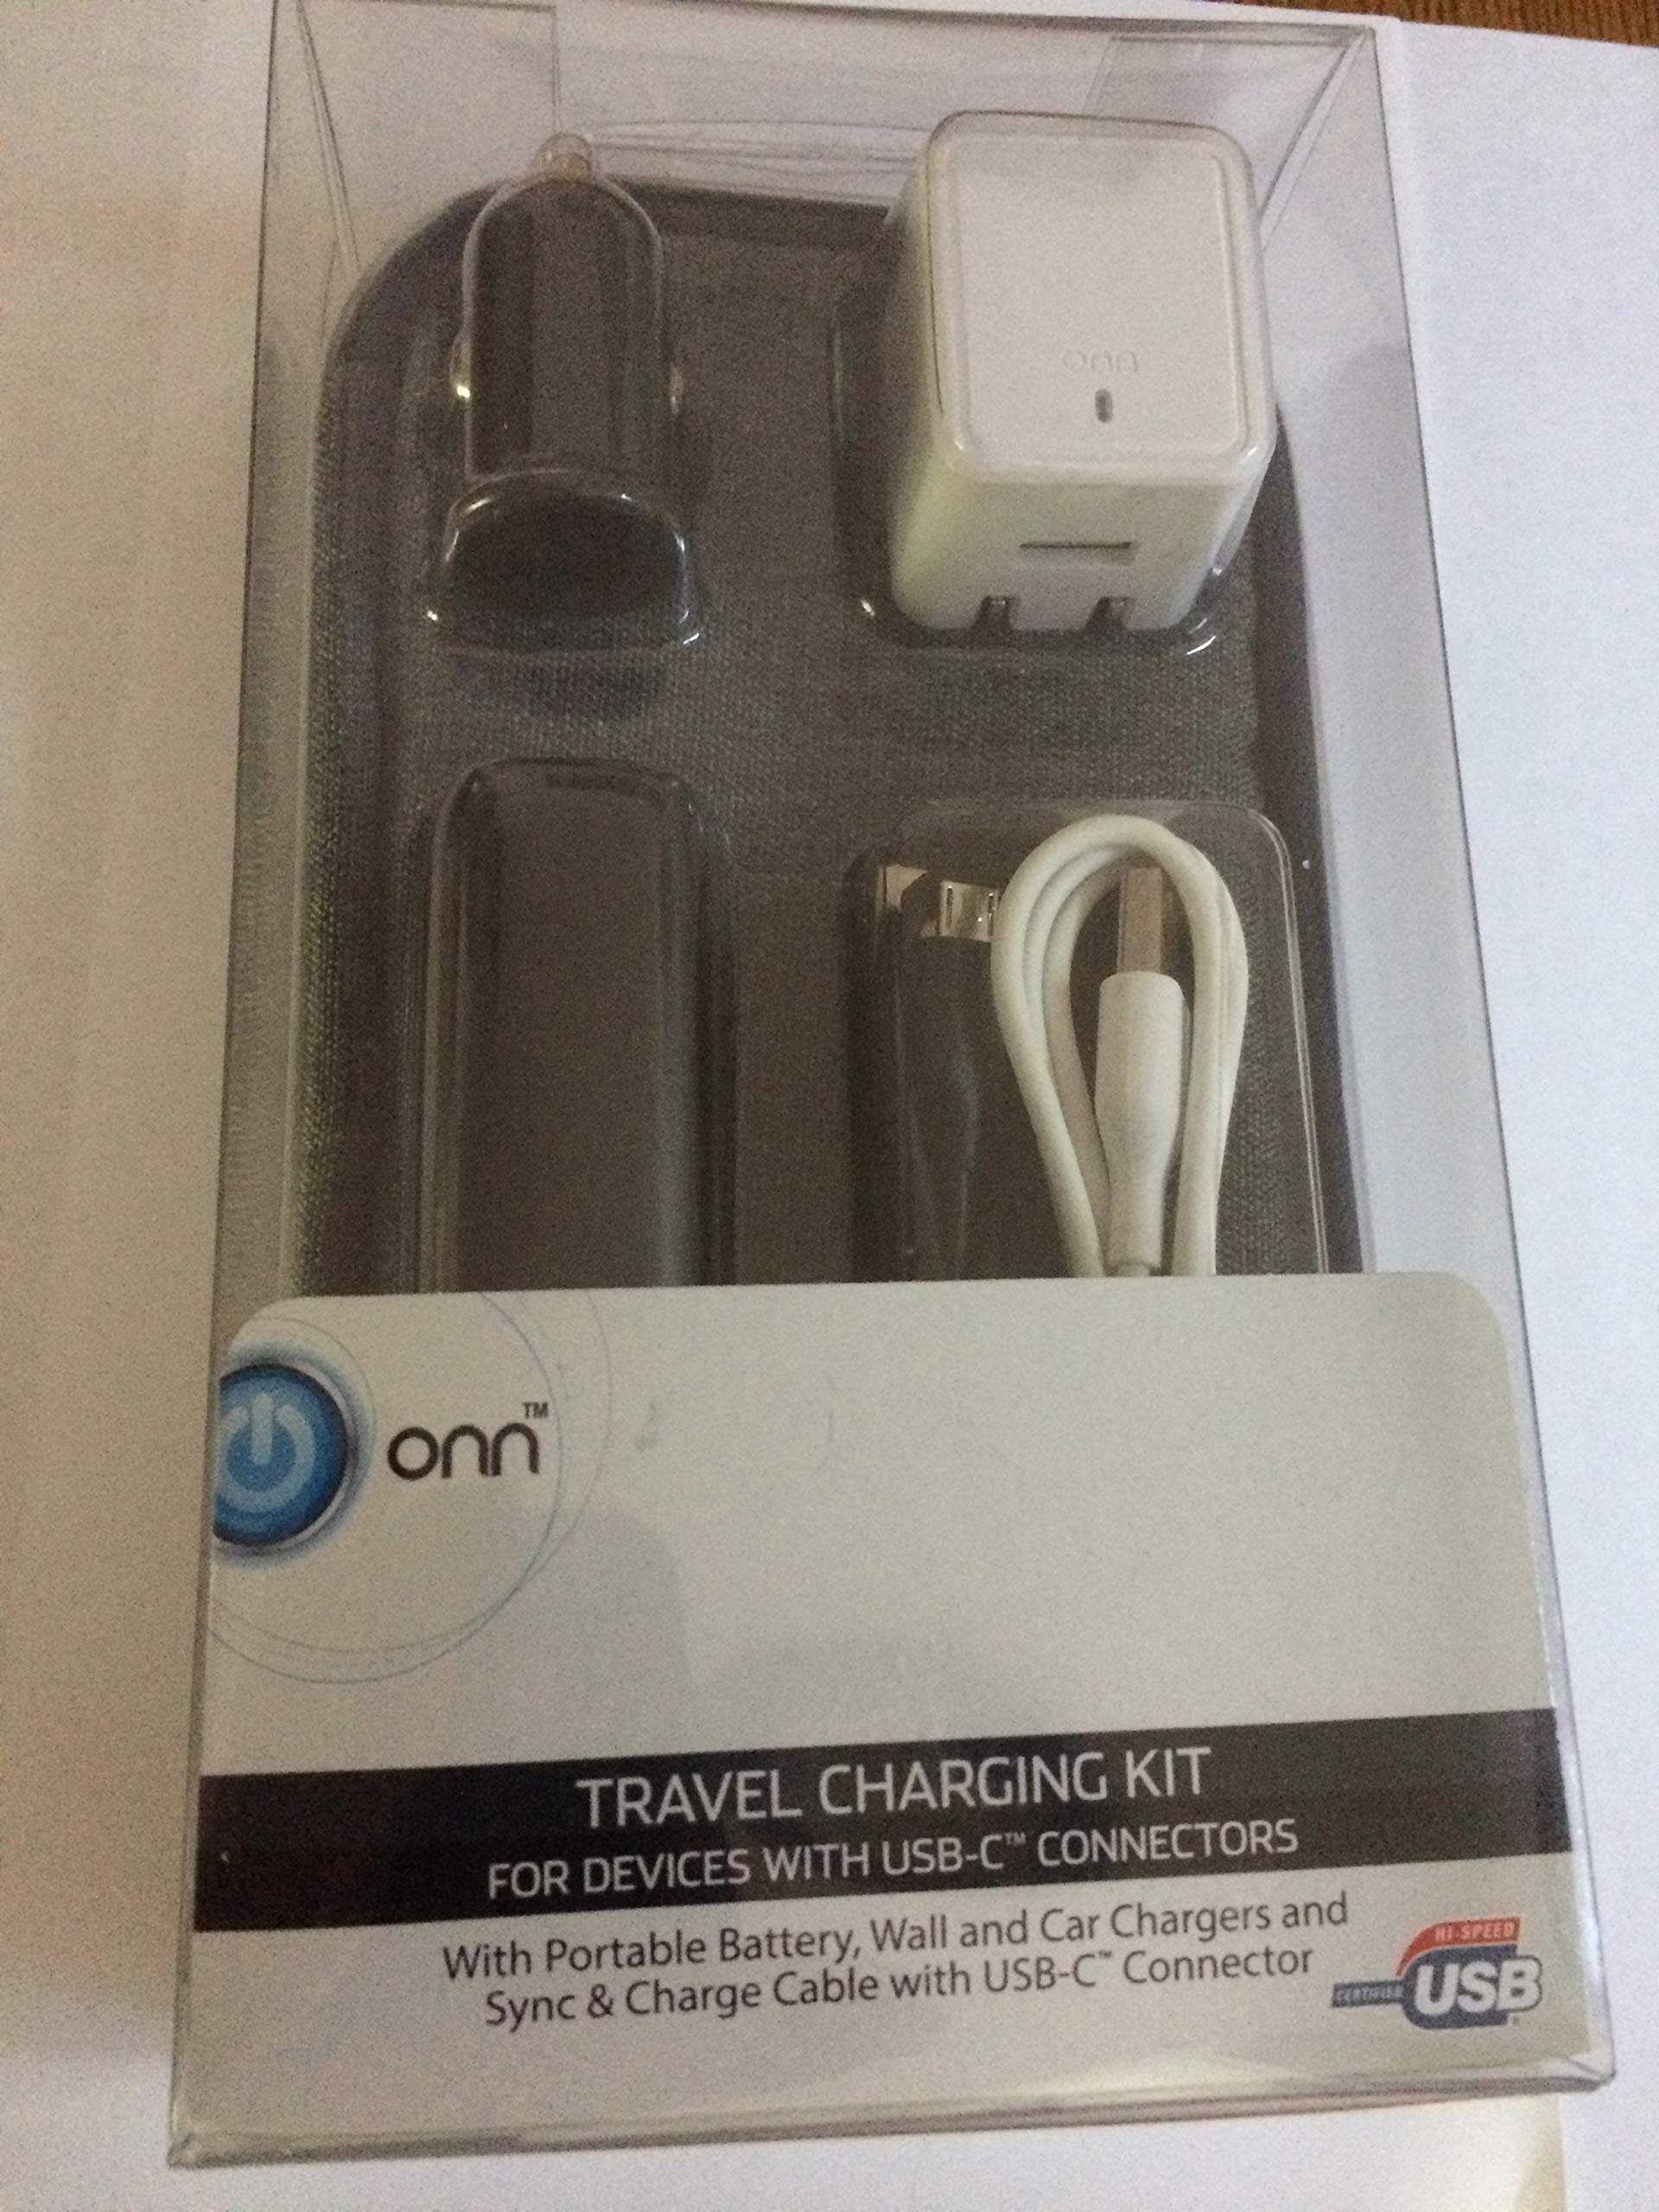 Travel Charging KIT for Devices with USB-C connectors